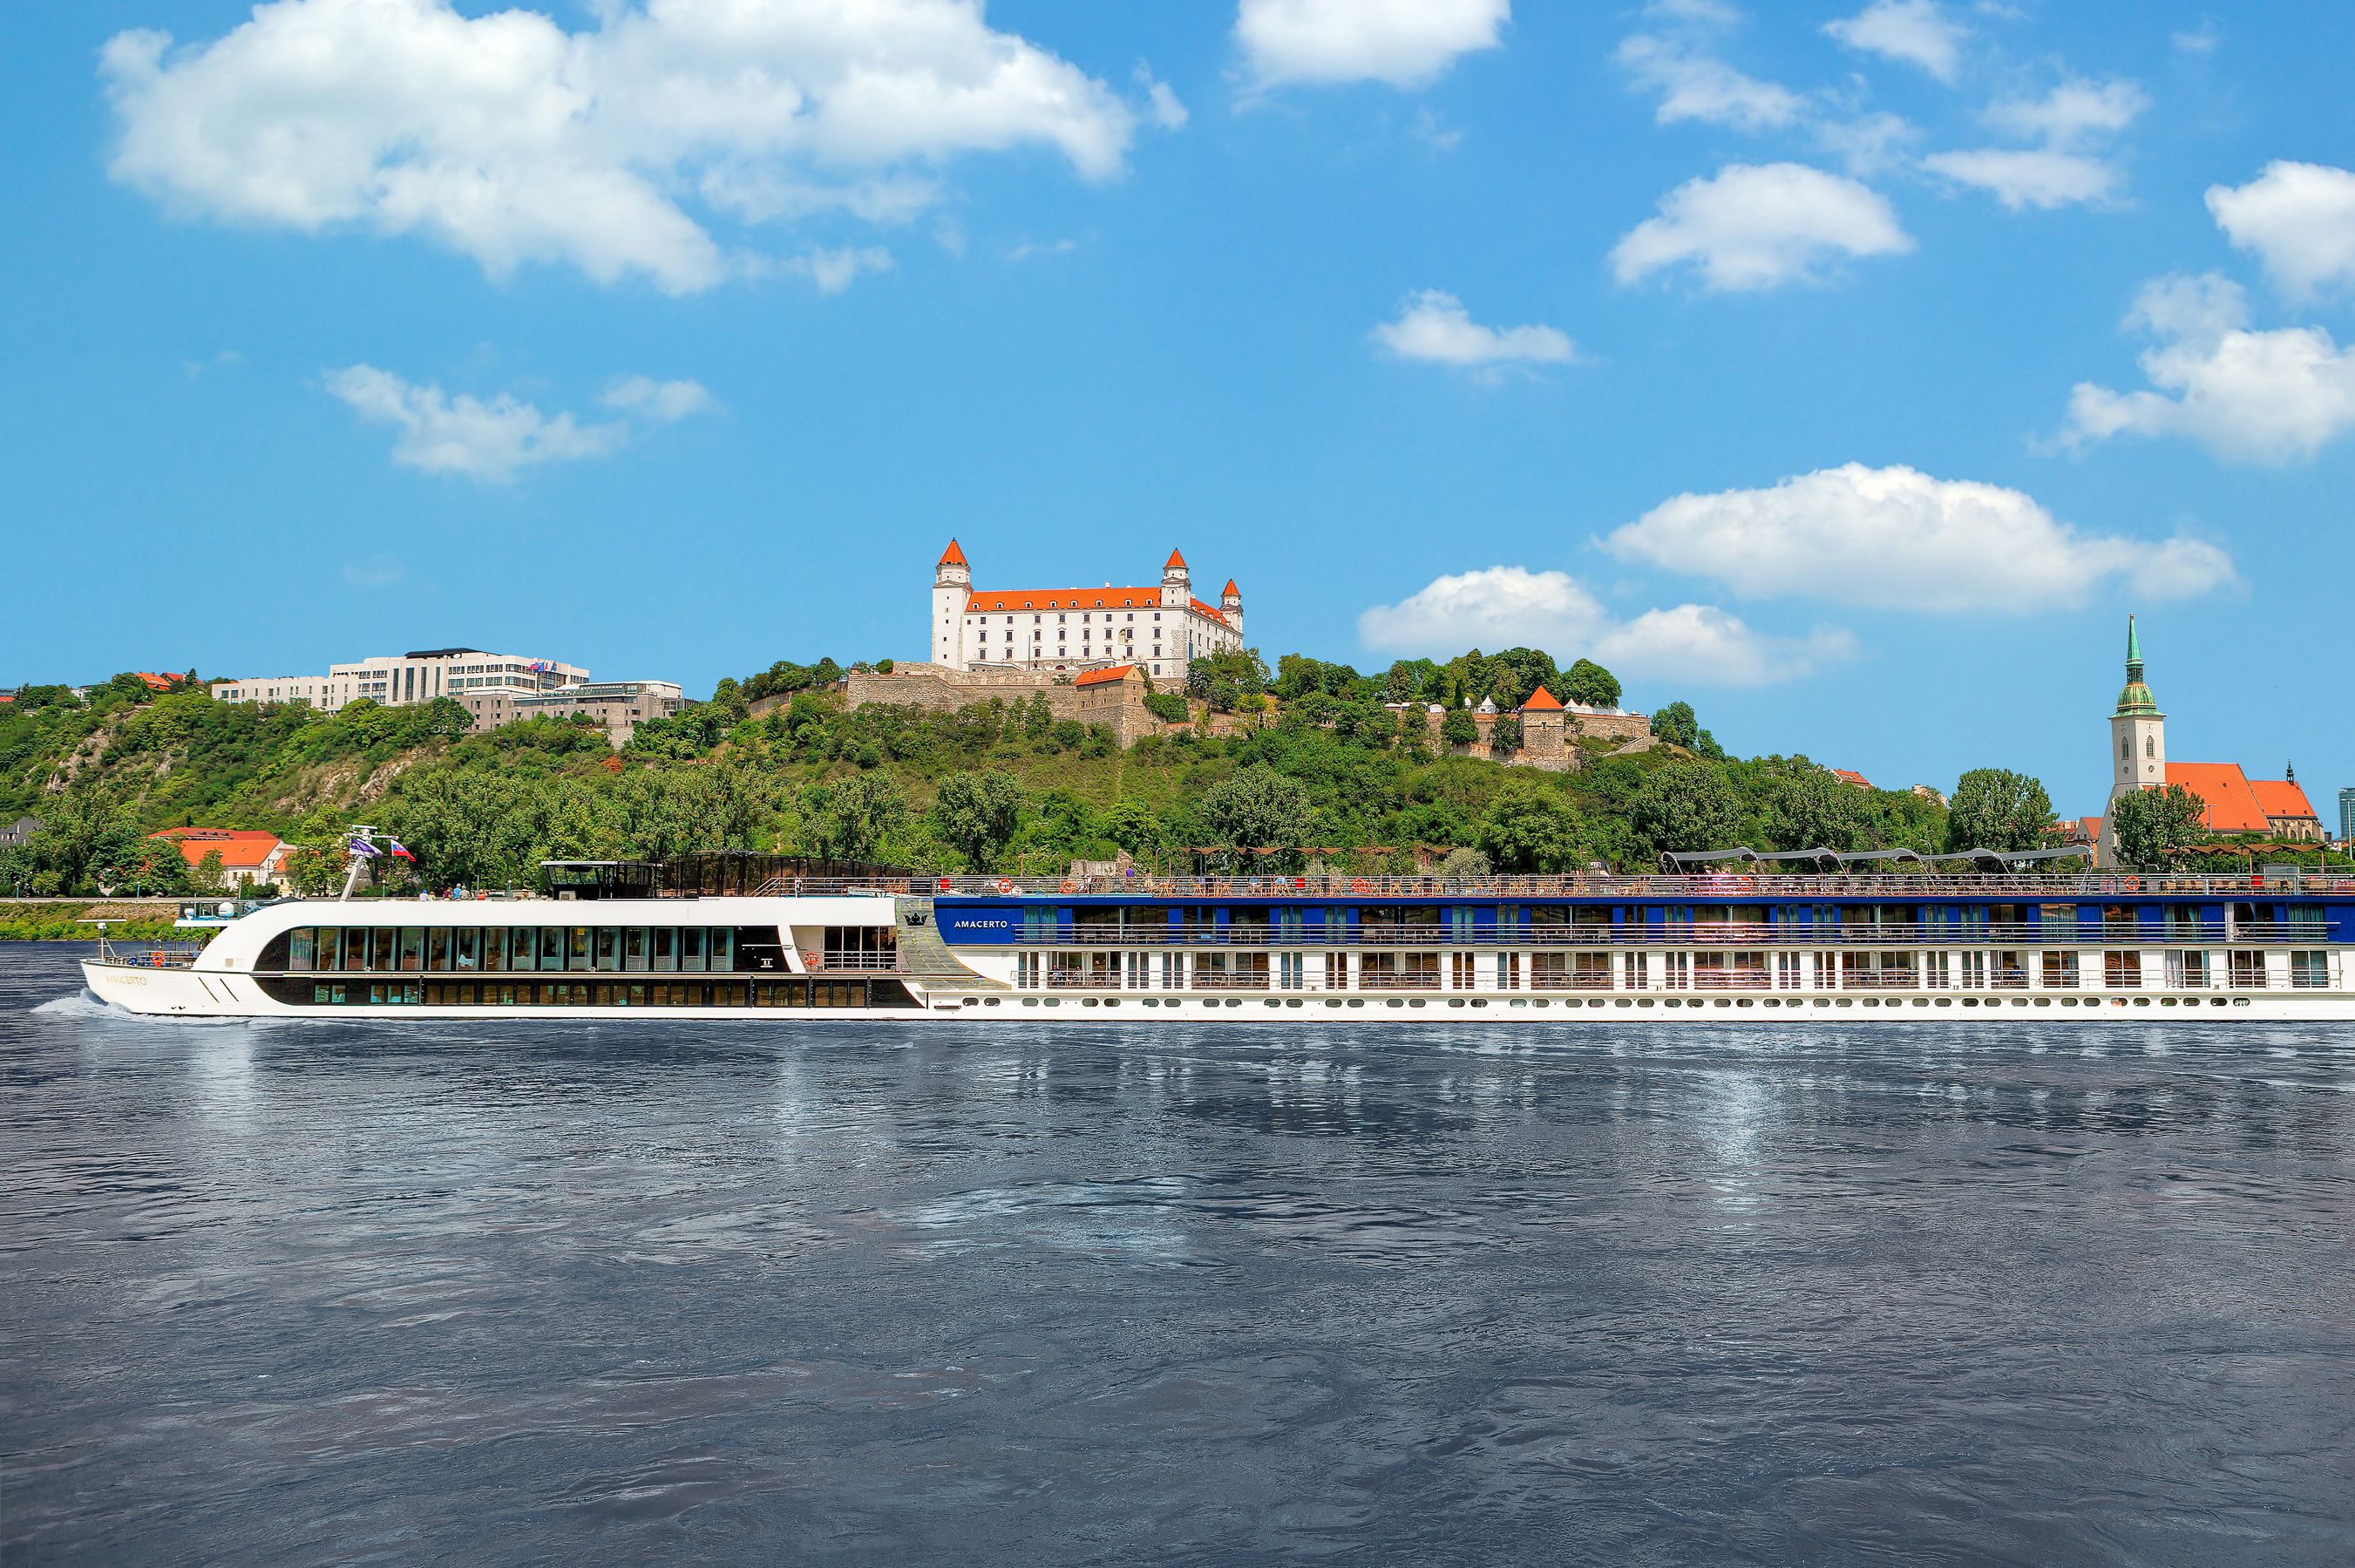 AmaWaterways - AmaCerto on the Danube in Bratislava